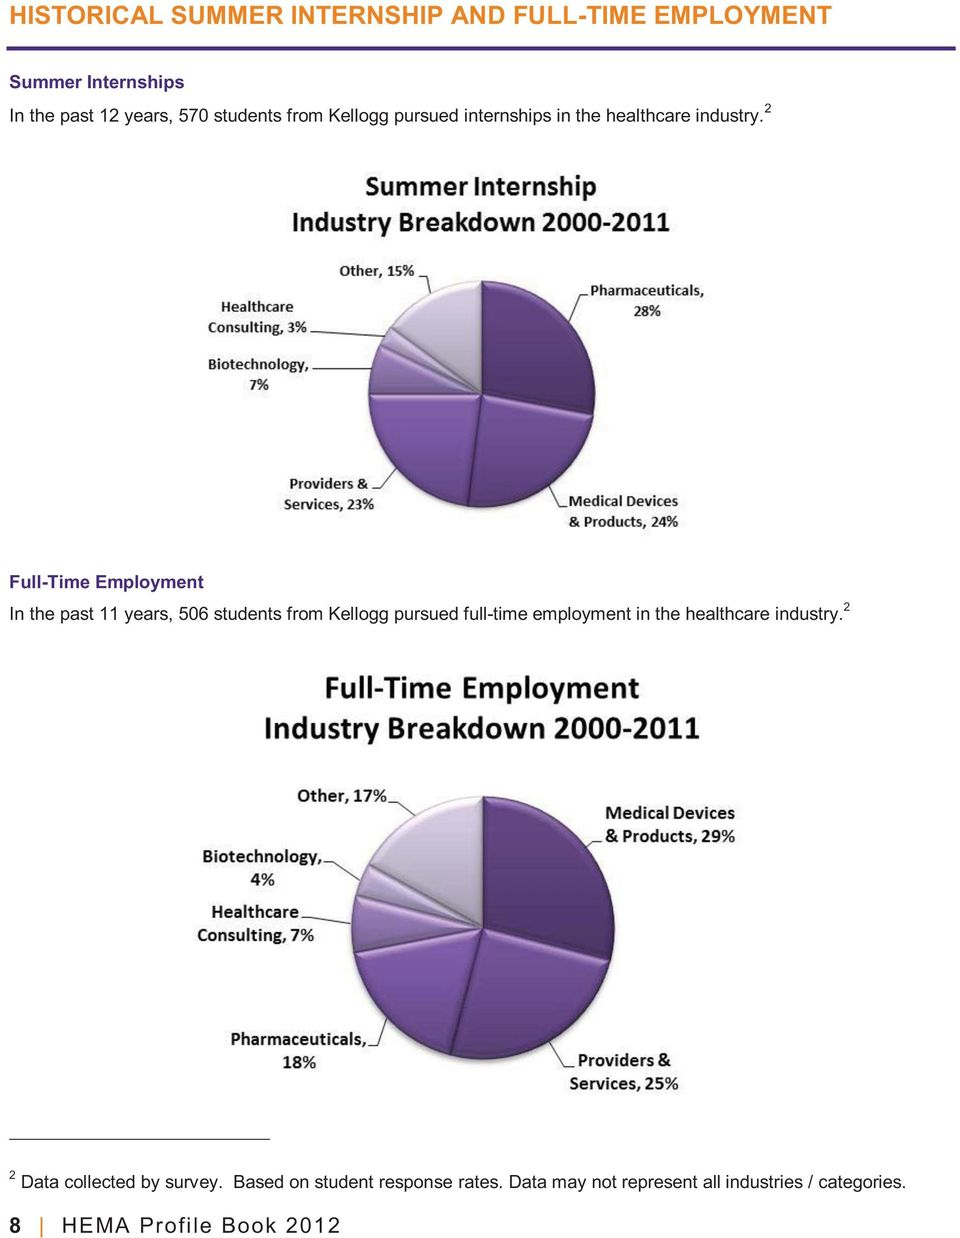 2 Full-Time Employment In the past 11 years, 506 students from Kellogg pursued full-time employment in the